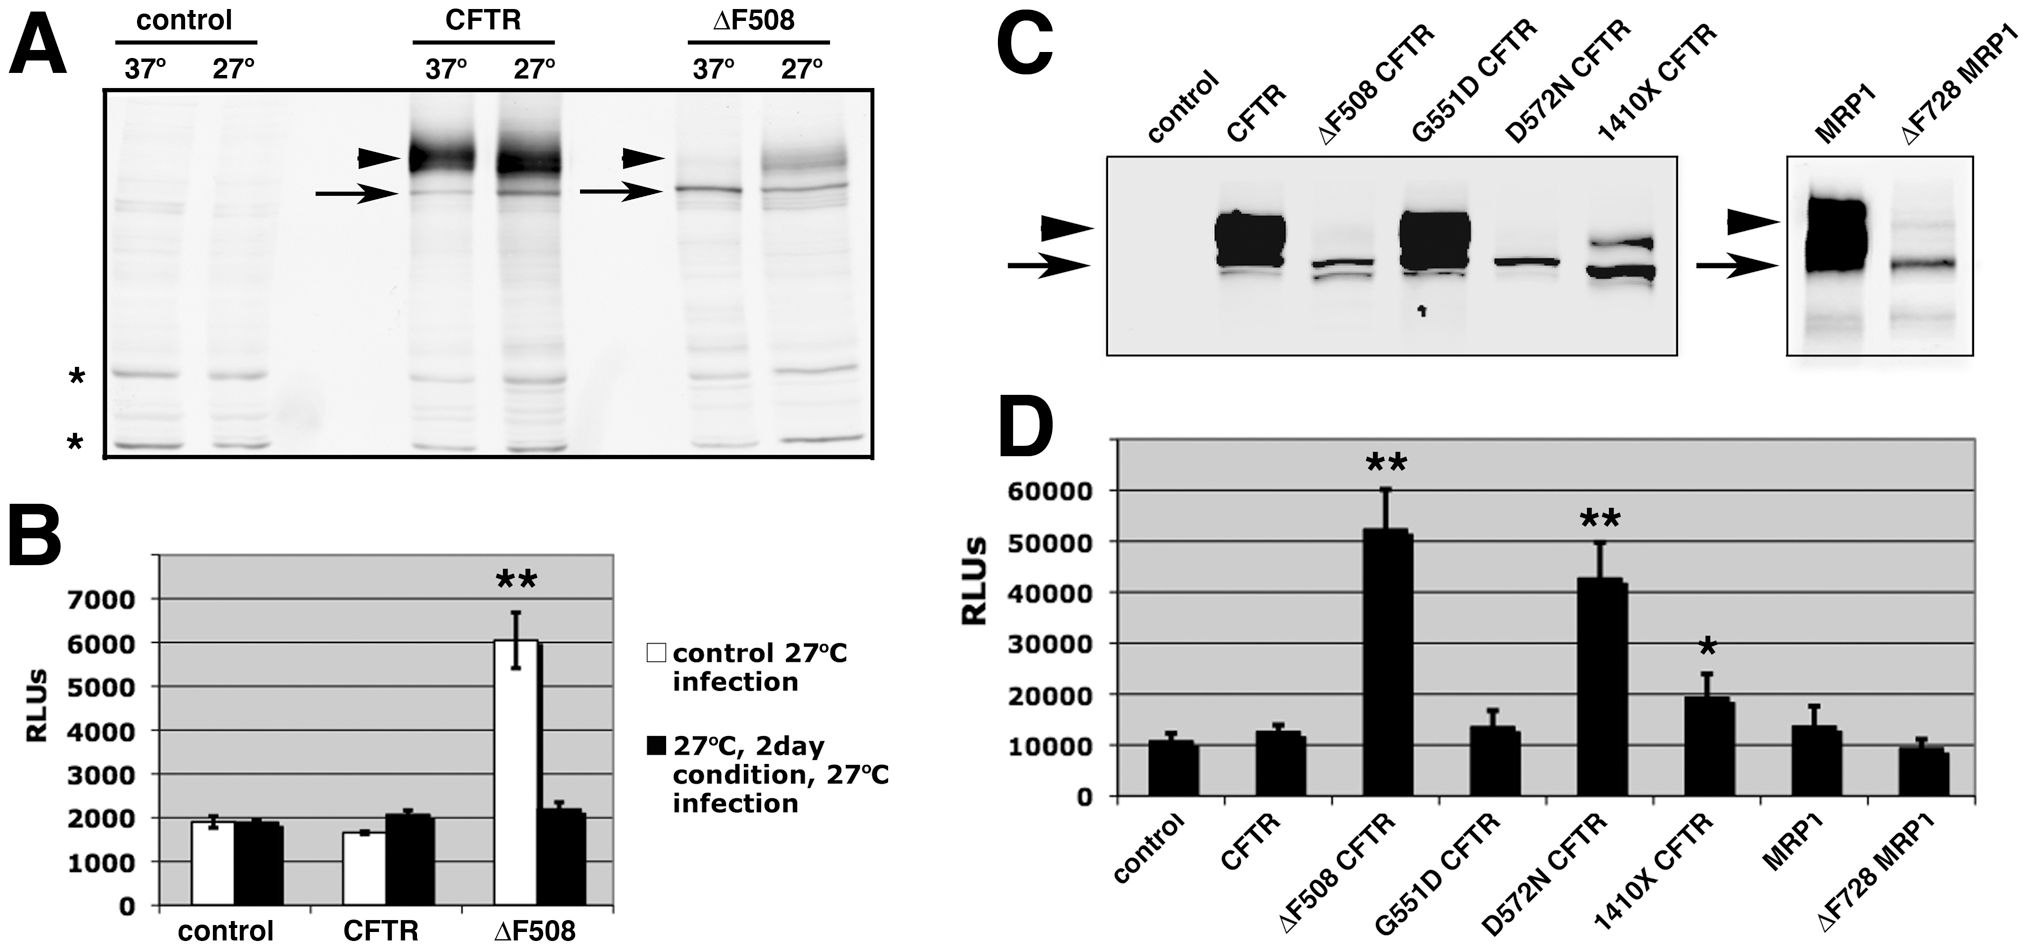 Effect of low temperature conditioning or expression of other misfolded proteins on AAV2 infection.